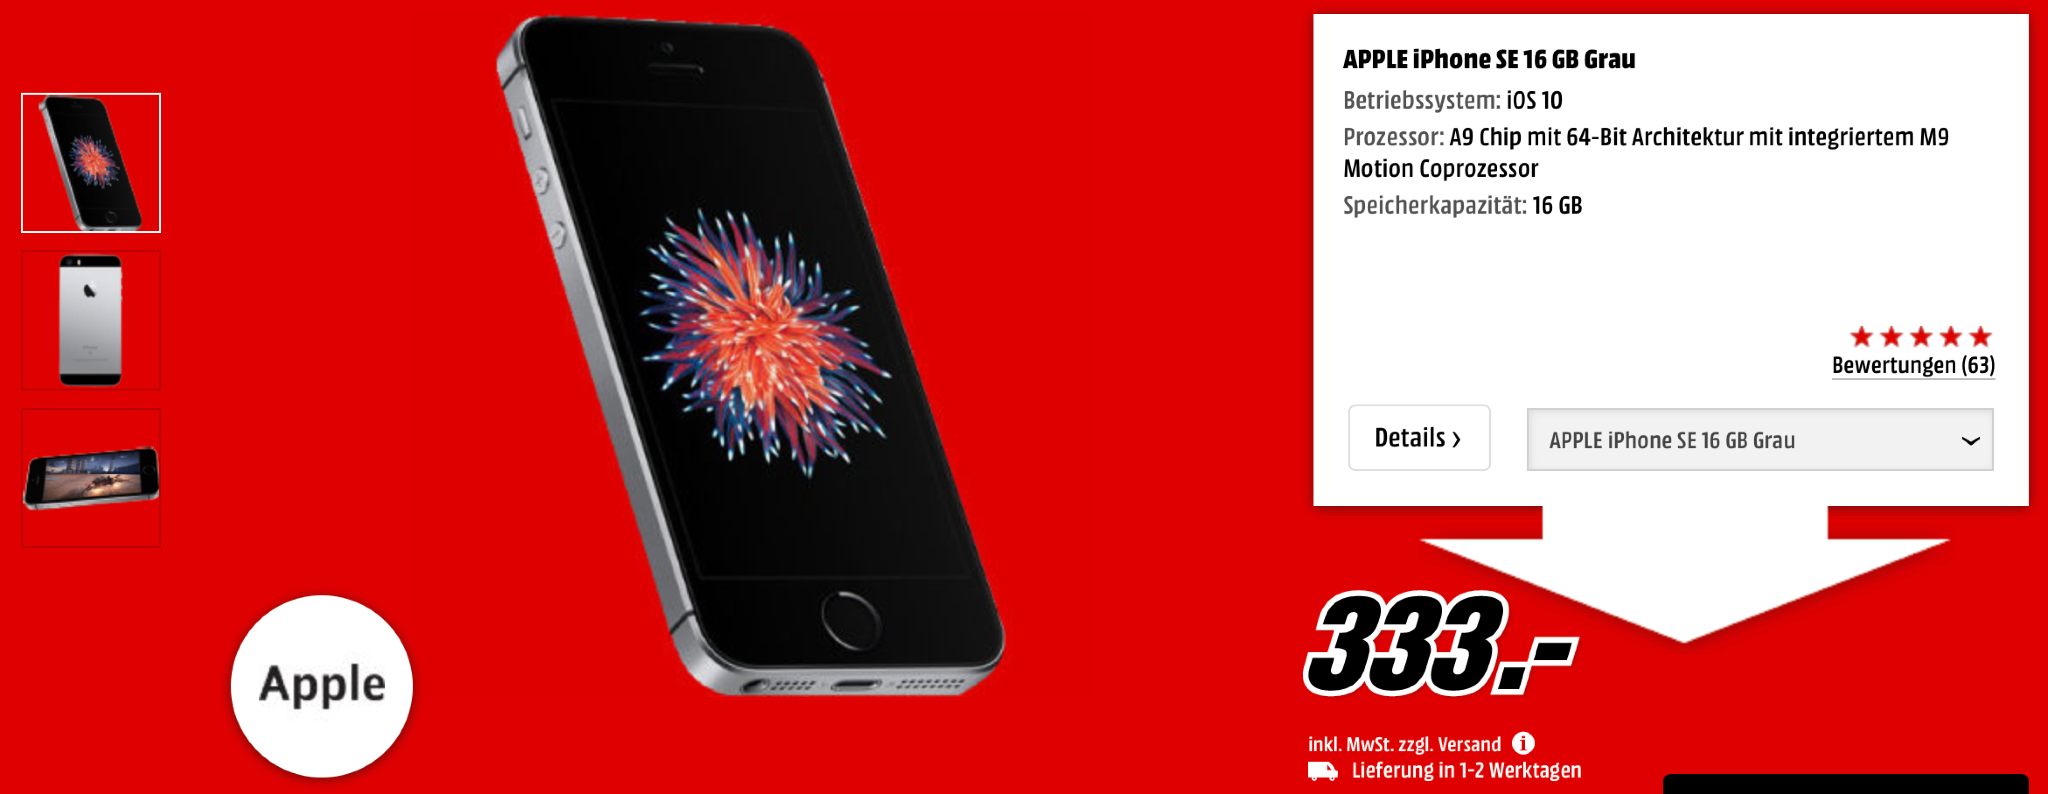 Iphone S Media Markt Mit Vertrag